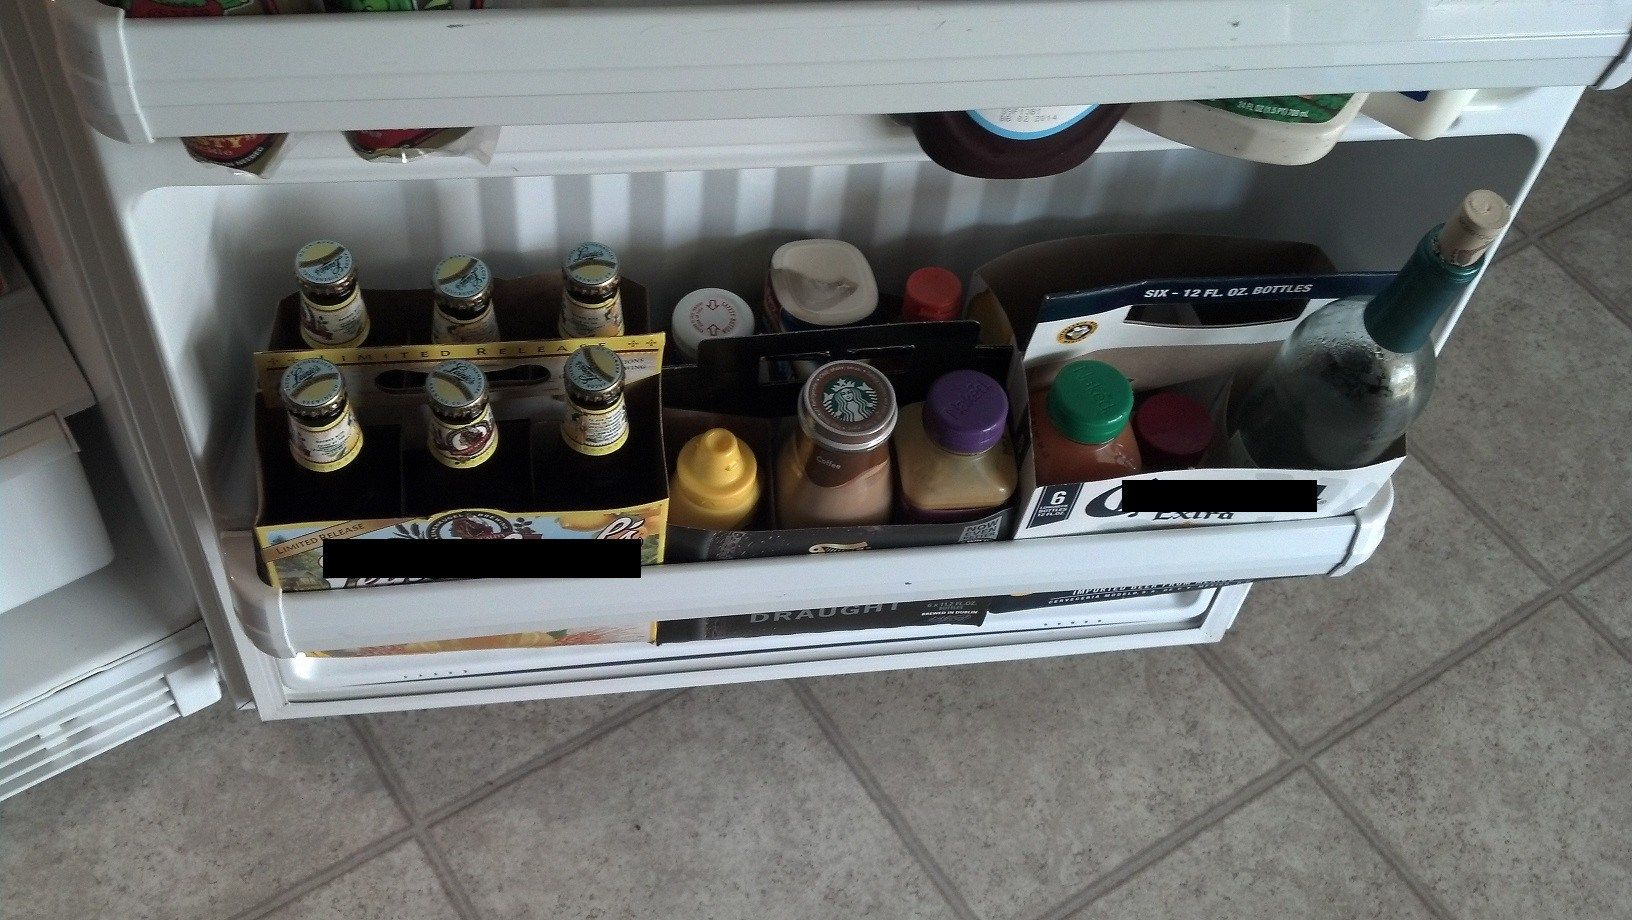 6pack containers organize